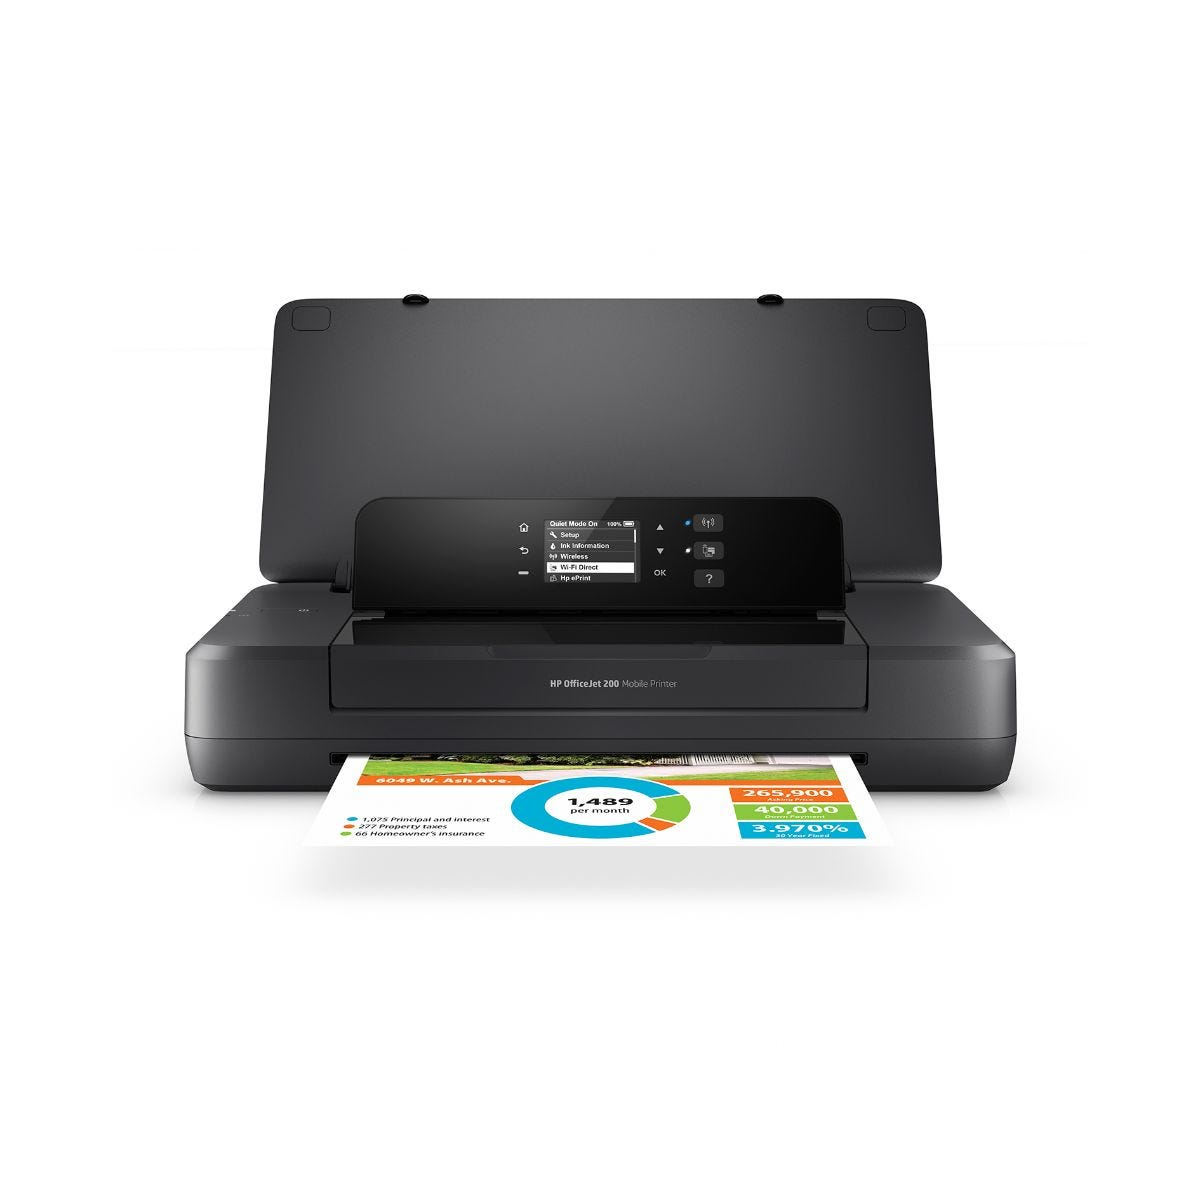 Image of HP OfficeJet 200 Mobile Printer